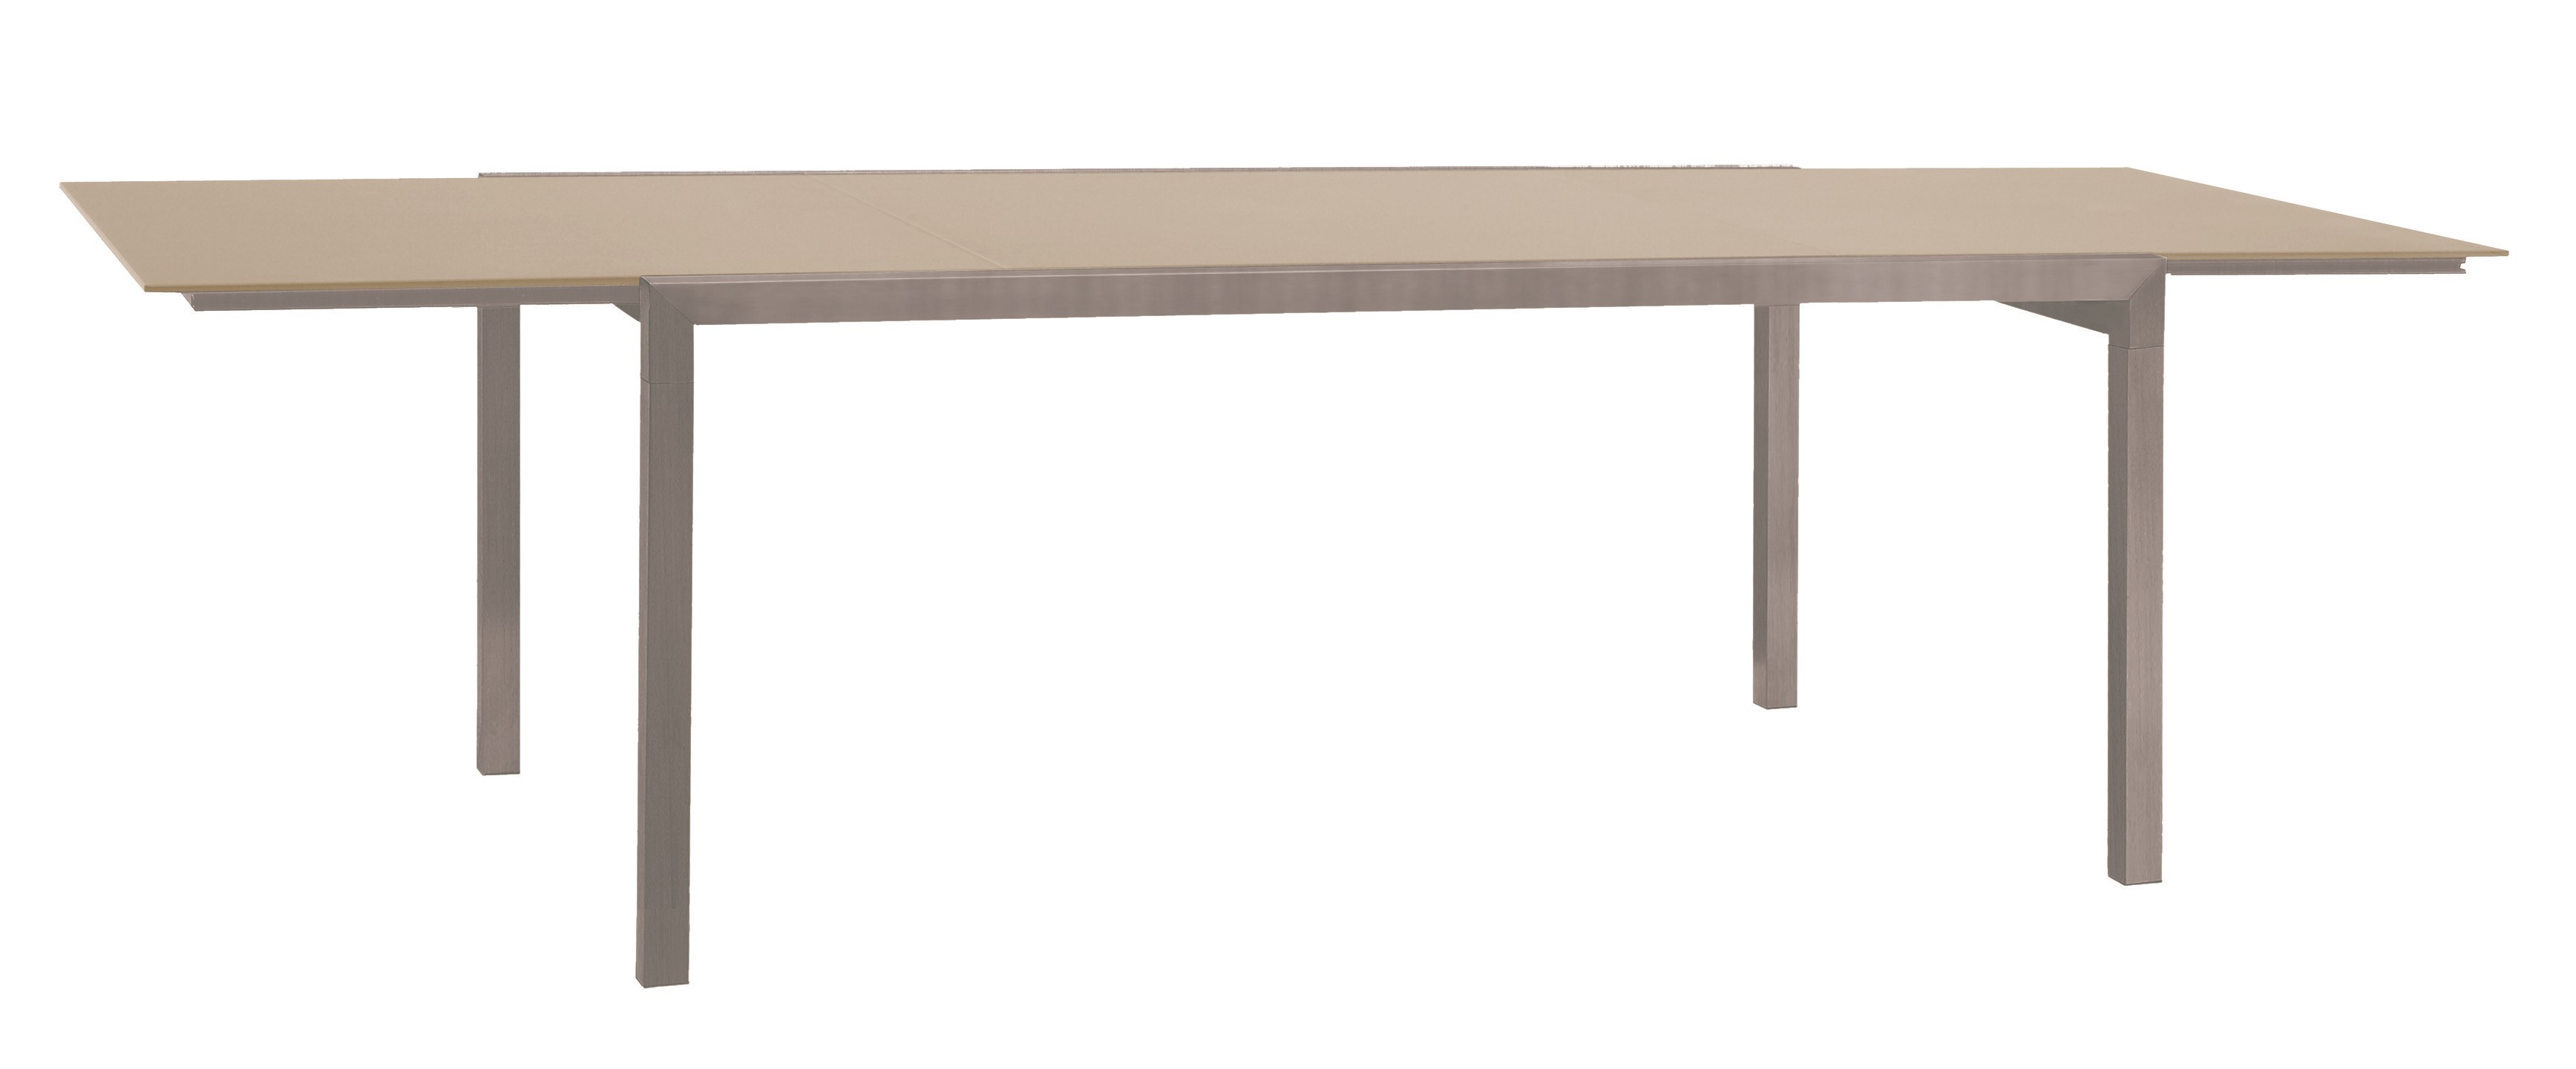 Table allonge